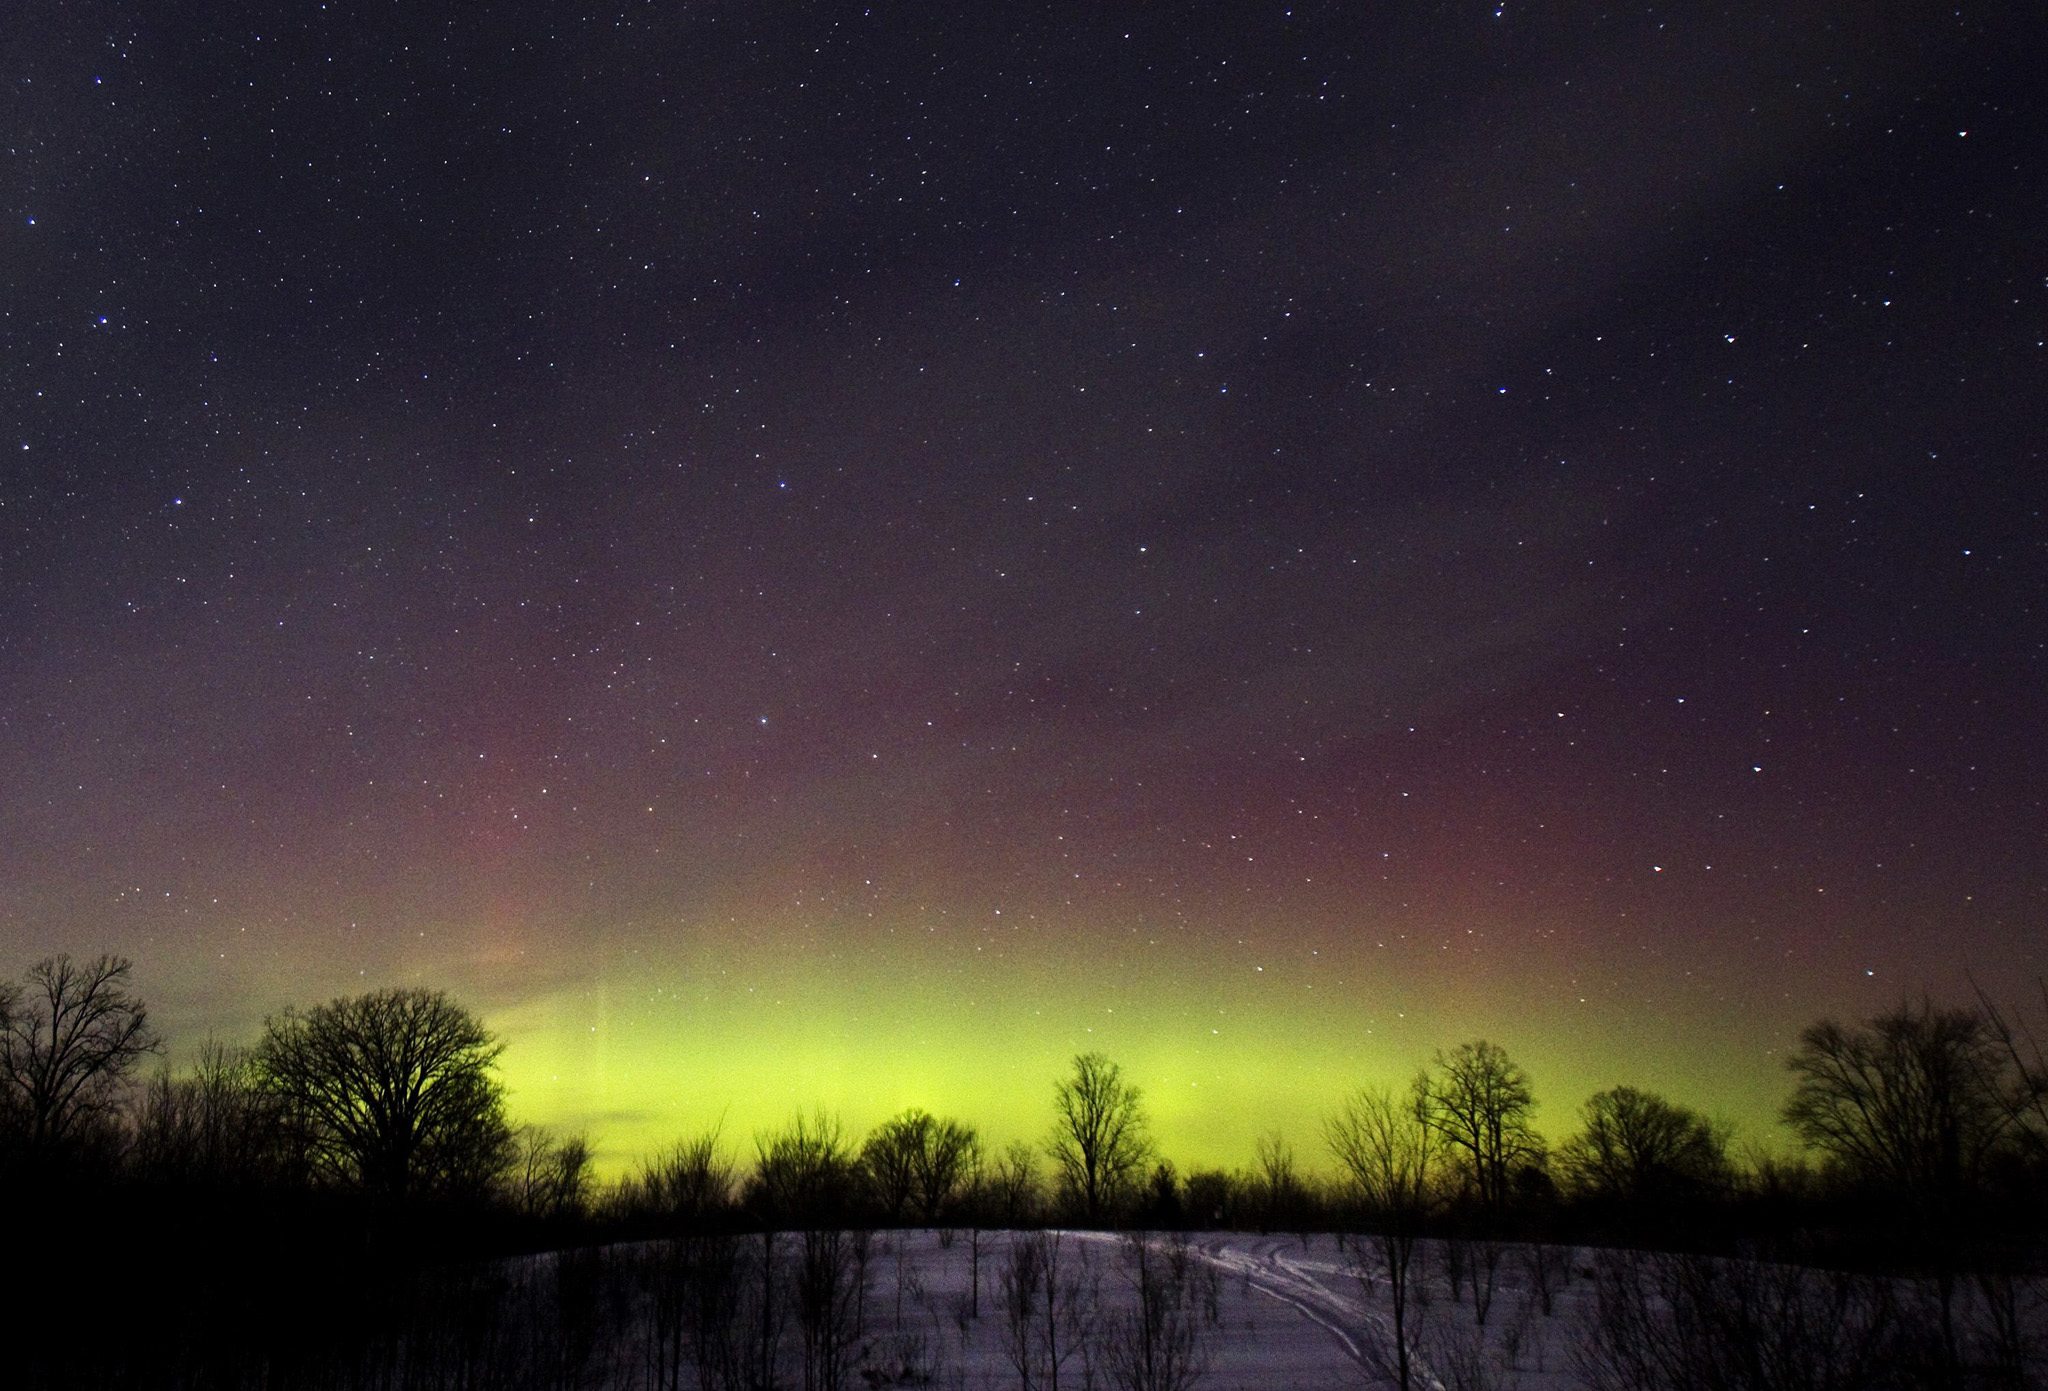 The glow of the Aurora Borealis, or Northern Lights, is seen in the horizon in Kawartha Lakes...The glow of the Aurora Borealis, or Northern Lights, is seen in the horizon in the Kawartha Lakes region, southern Ontario February 23, 2015. The colorful cosmic display of the northern lights is rarely seen in Ontario. REUTERS/Fred Thornhill   (CANADA - Tags: ENVIRONMENT)